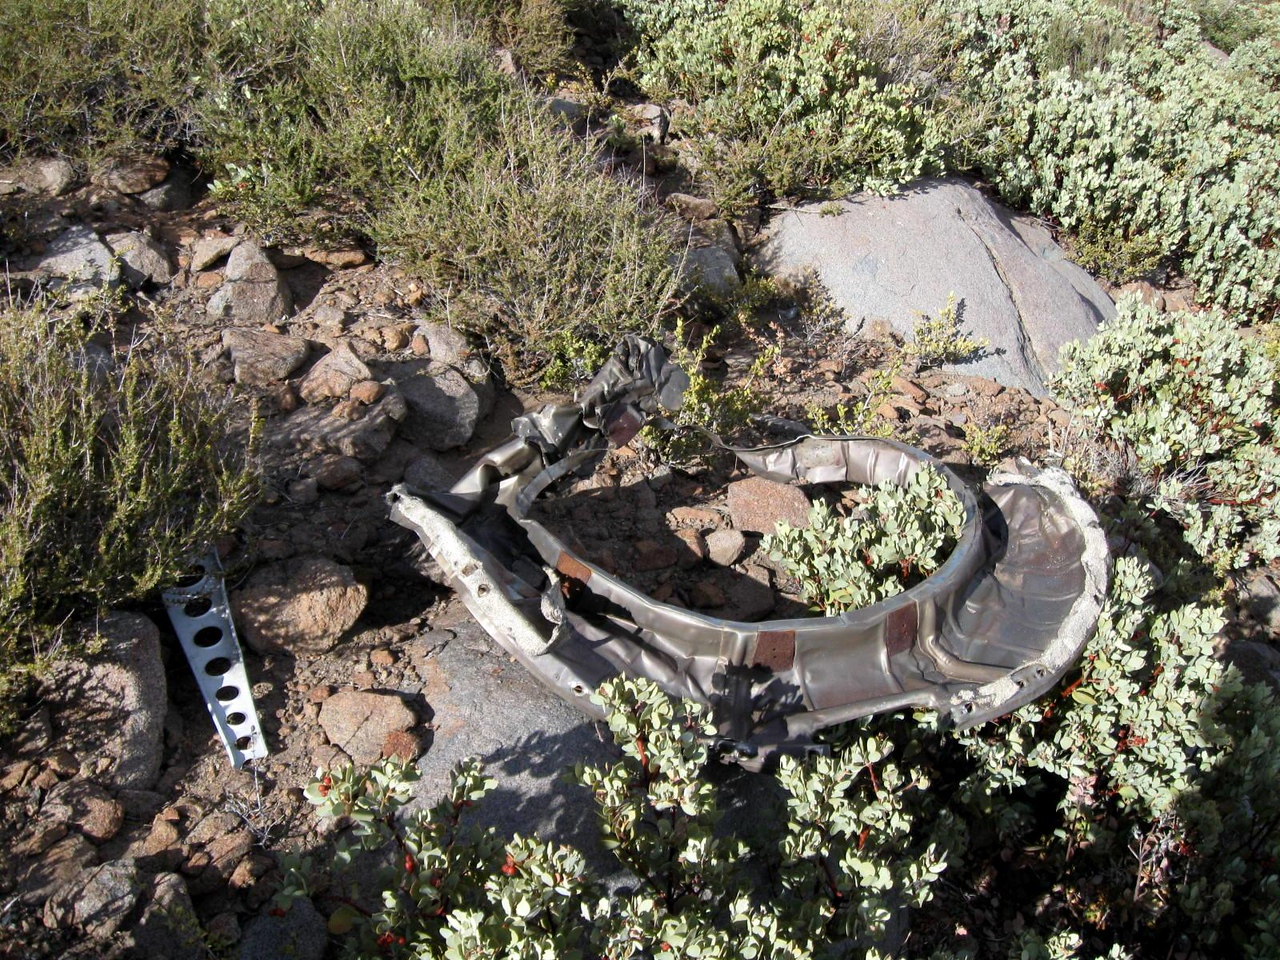 An engine firewall pan assembly was another identifiable fragment.